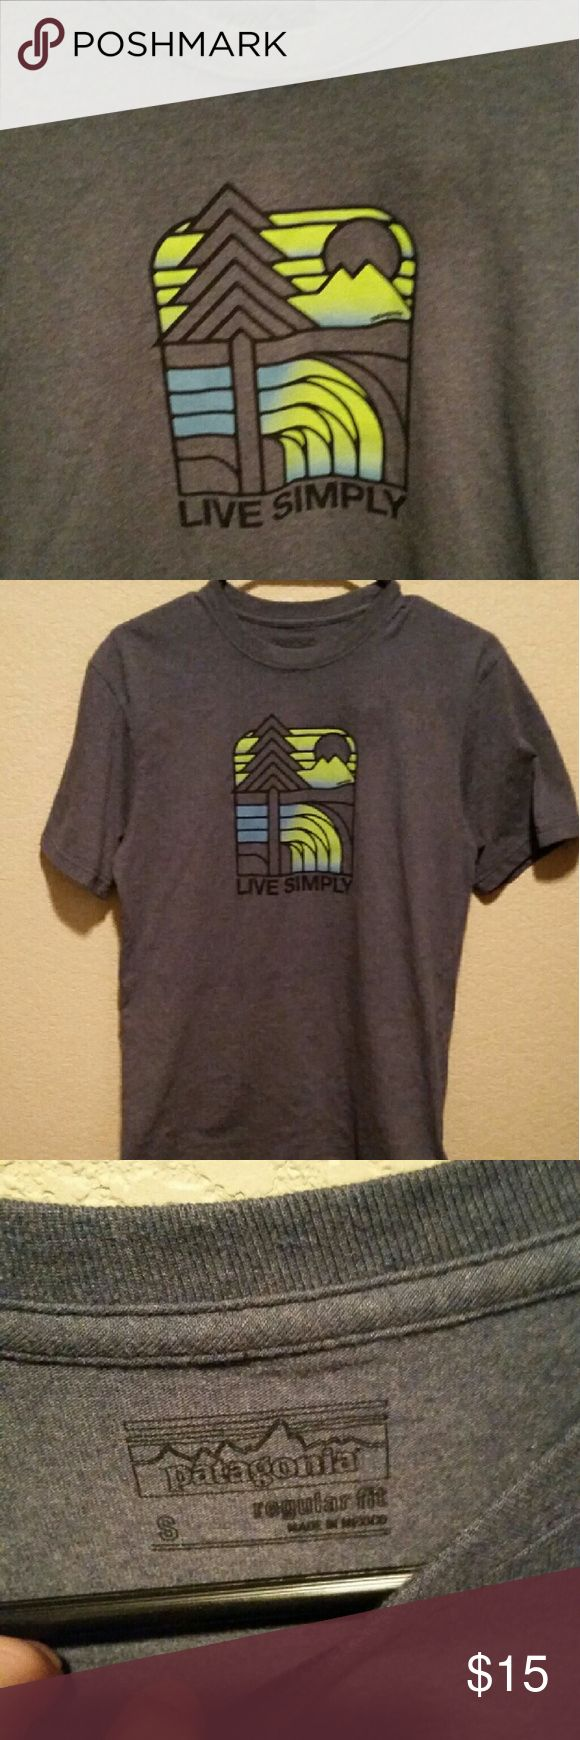 Patagonia live simply shirt Patagonia live simply shirt size small in great condition worn 2 times. Regular fit mens Patagonia Shirts Tees - Short Sleeve